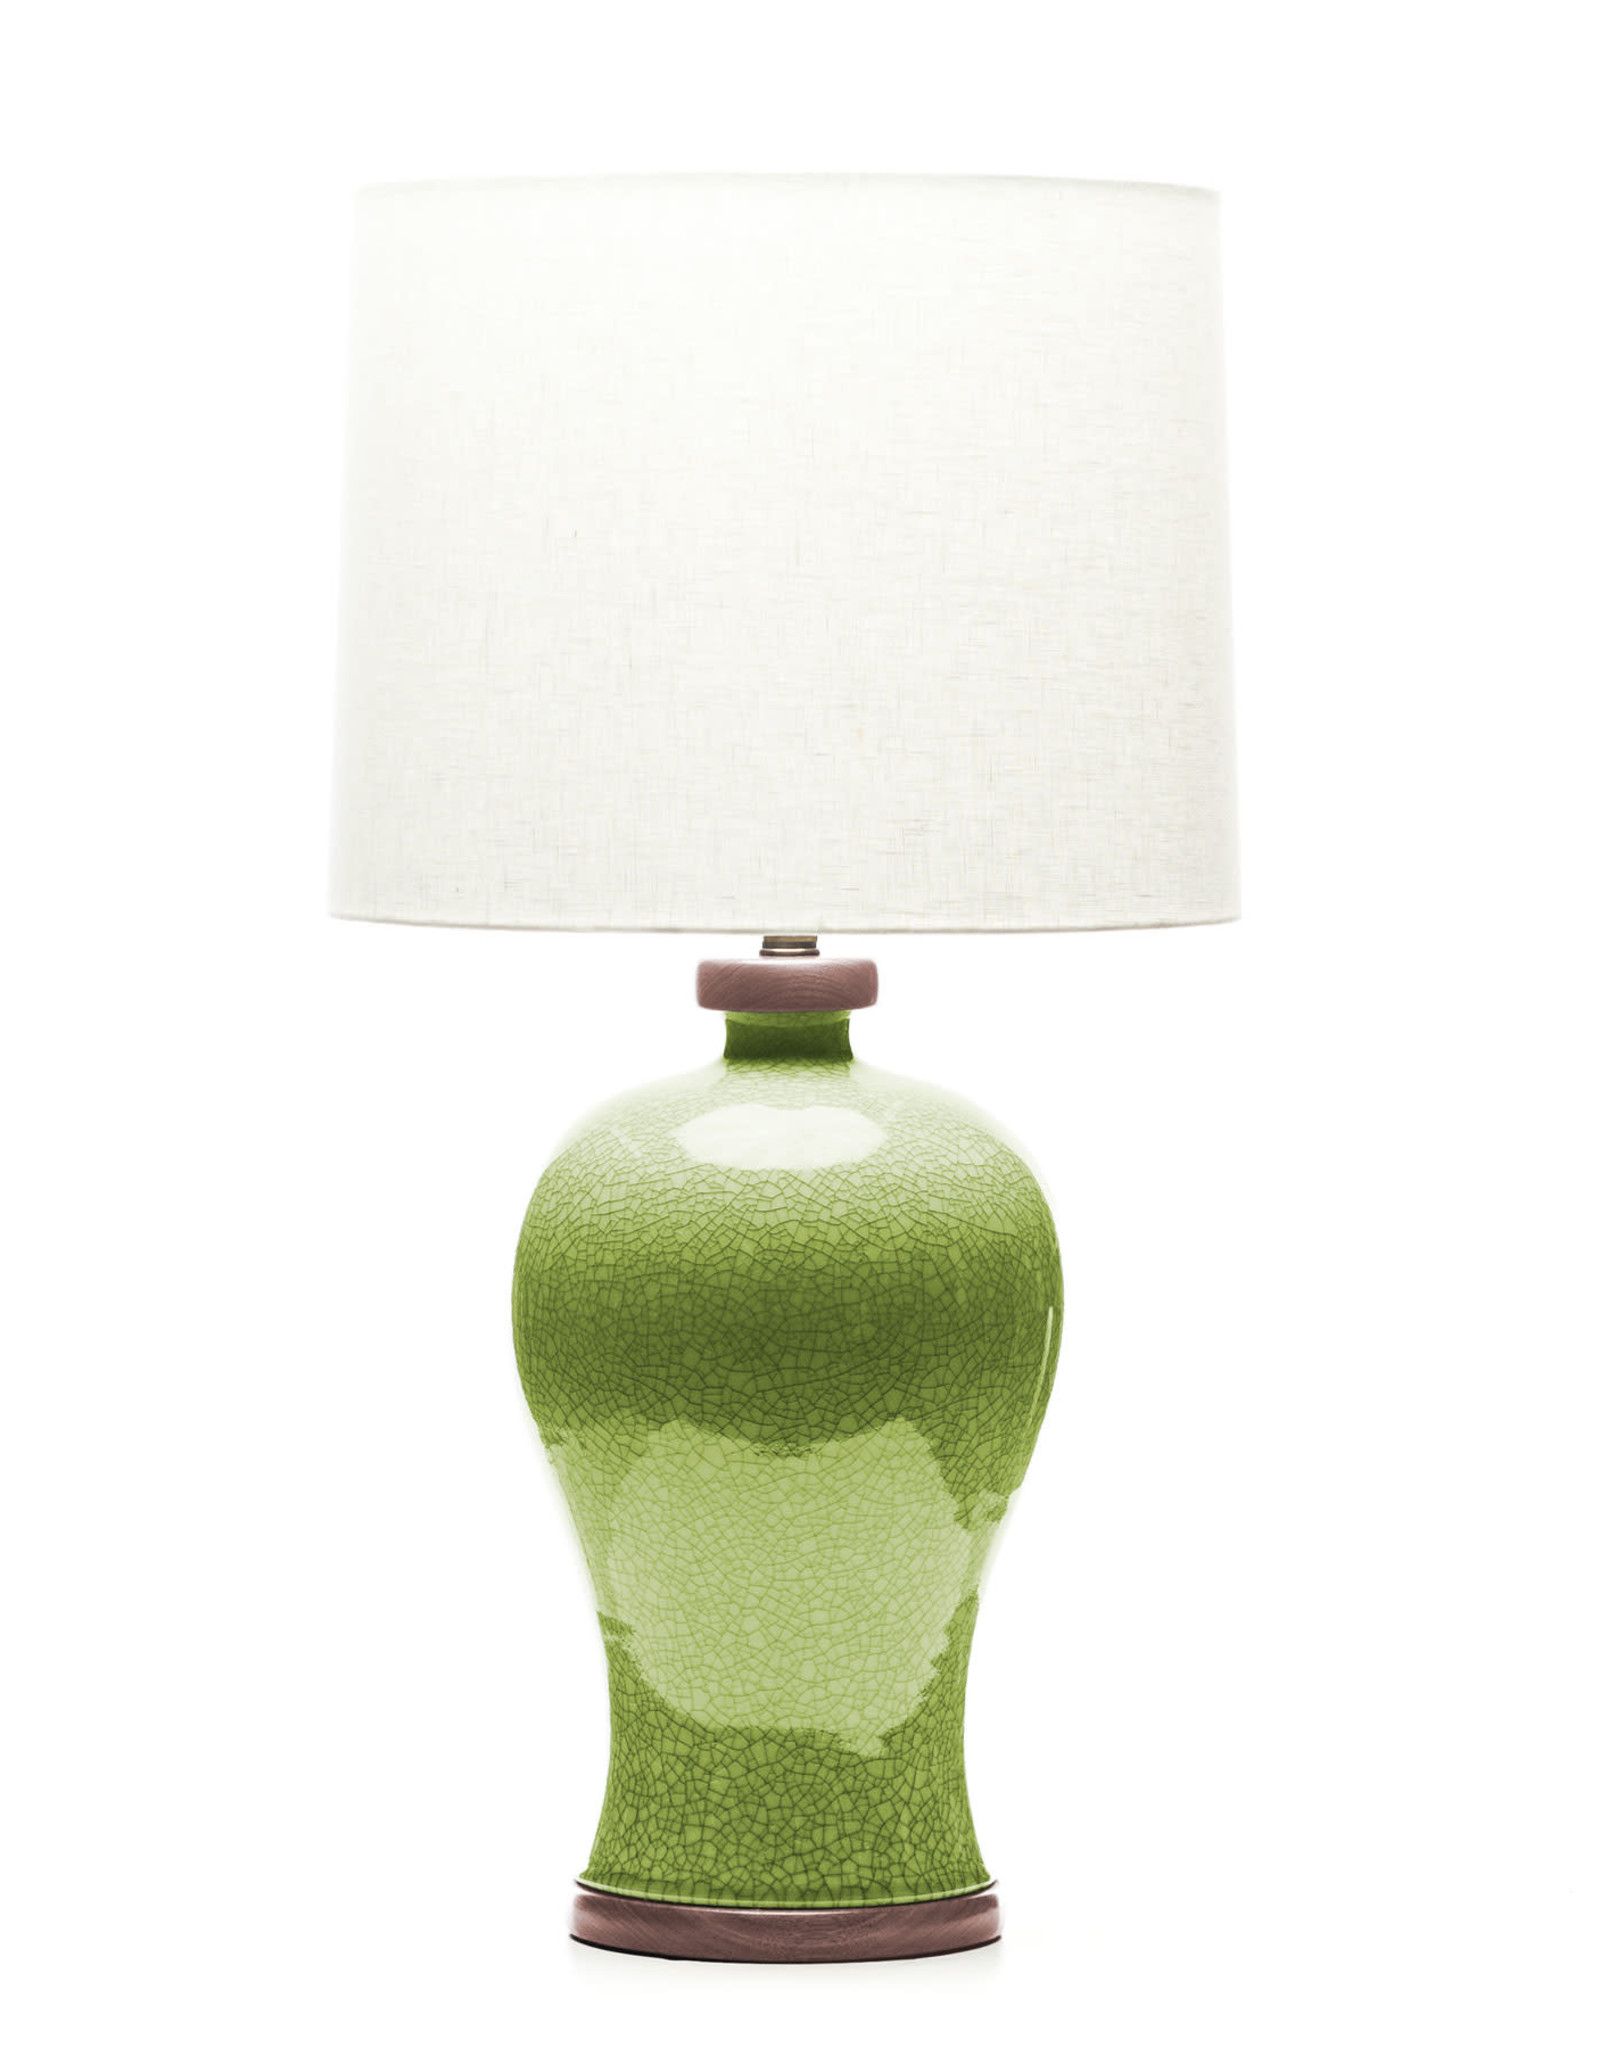 Lawrence & Scott Dashiell Table Lamp in Celadon Crackle with Sapele Base